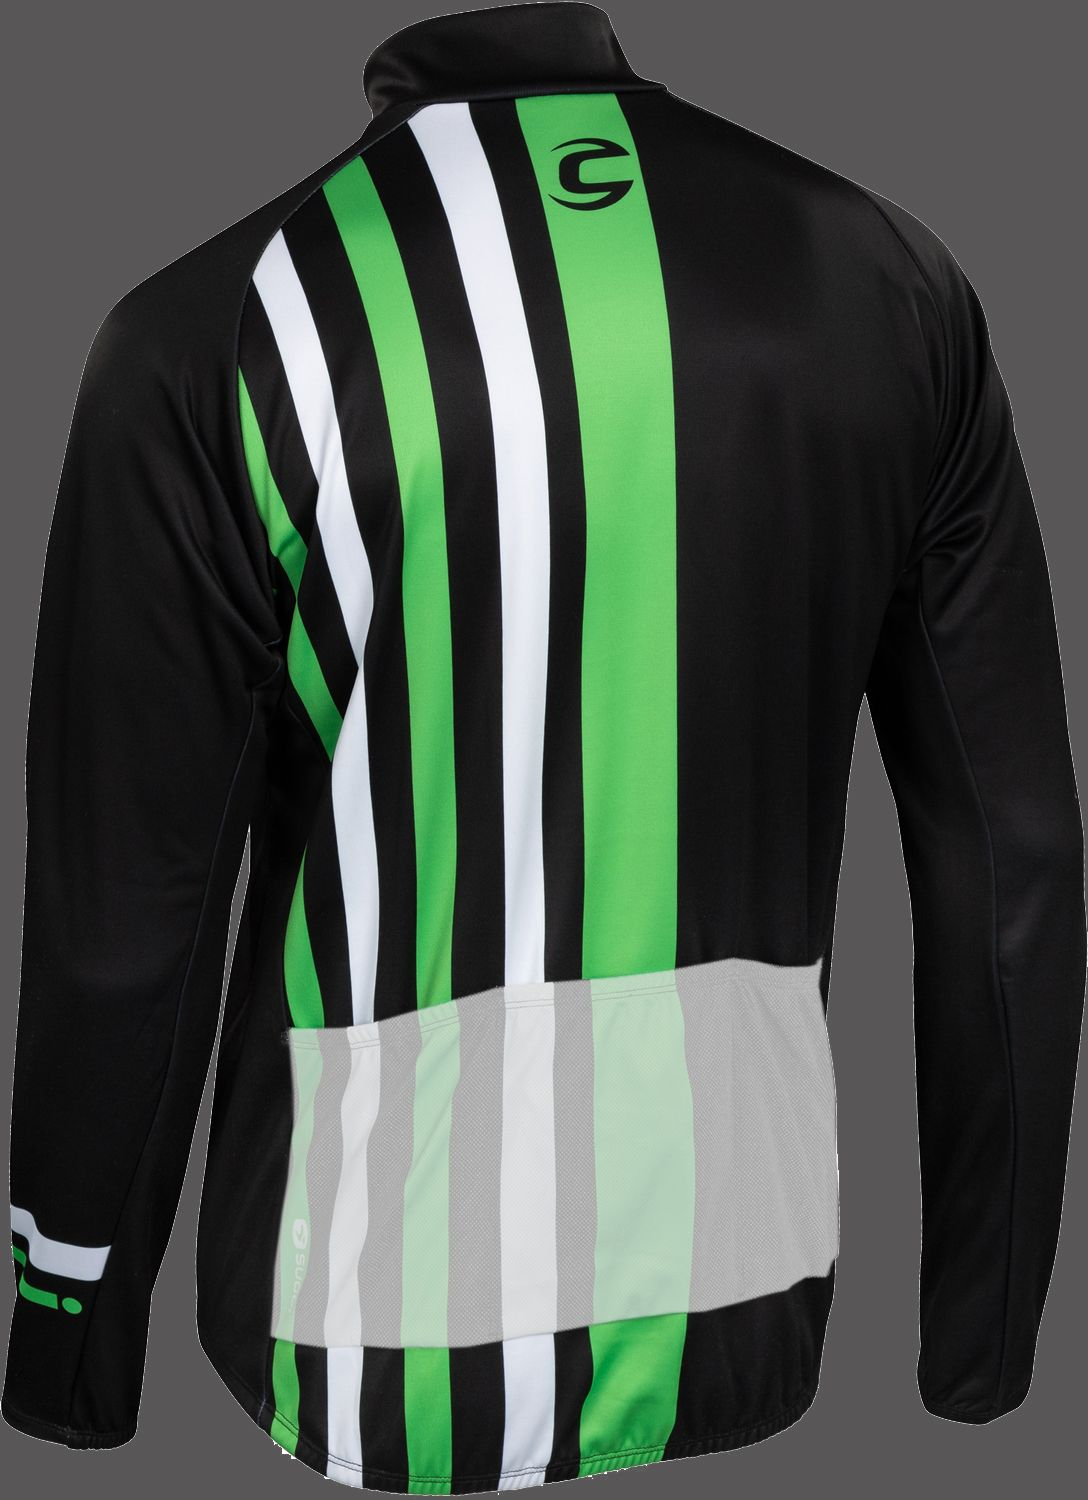 ce4c03c64 Cannondale EVOLUTION ZAP long sleeve cycling jersey black green by Sugoi.  Next